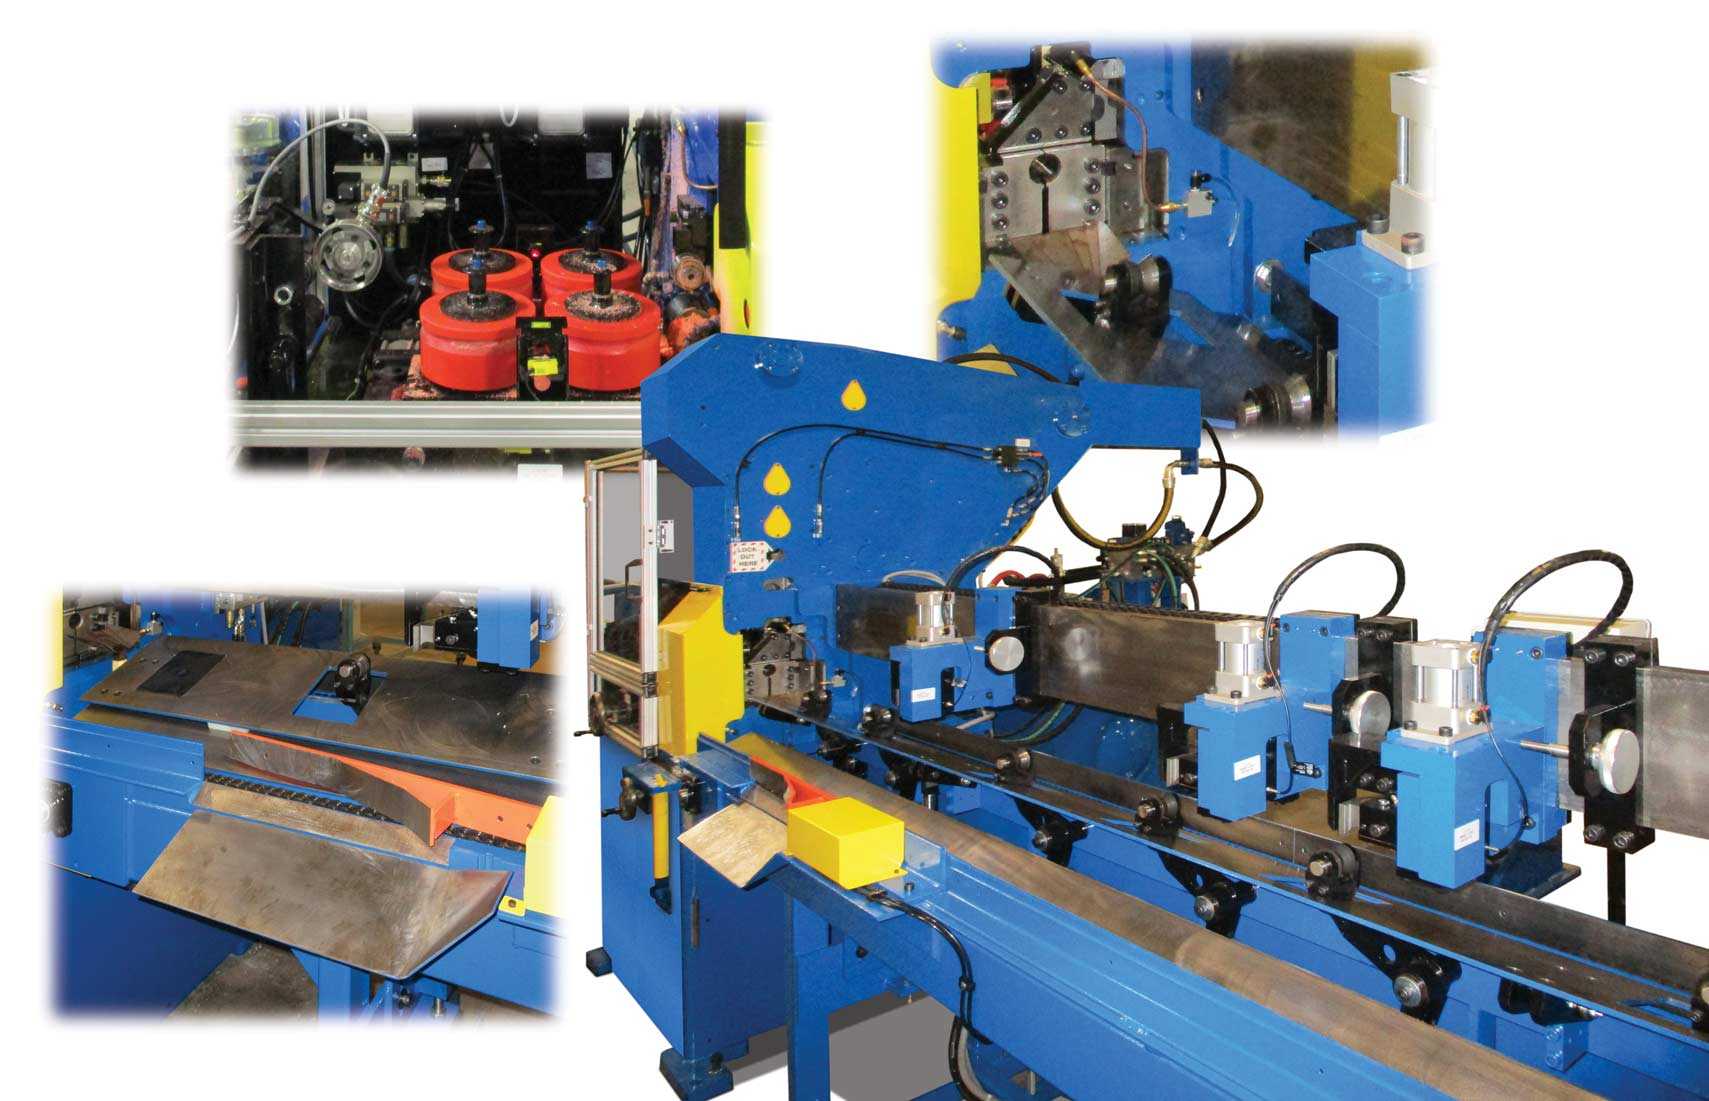 873 Dual-Blade Shear Cutoff machine